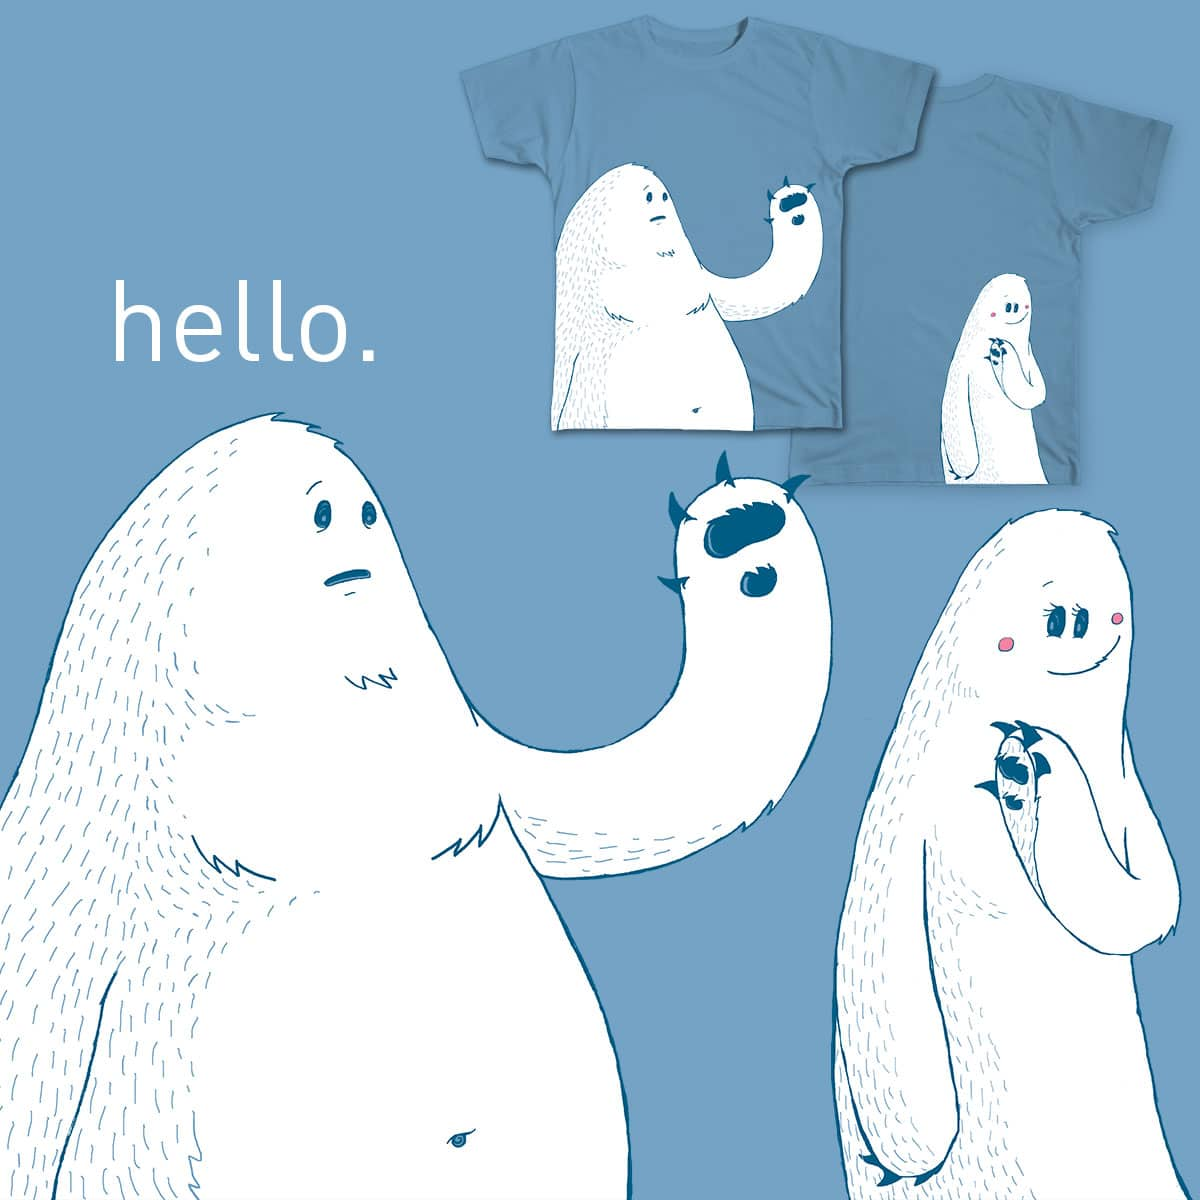 Hello. by nganci on Threadless